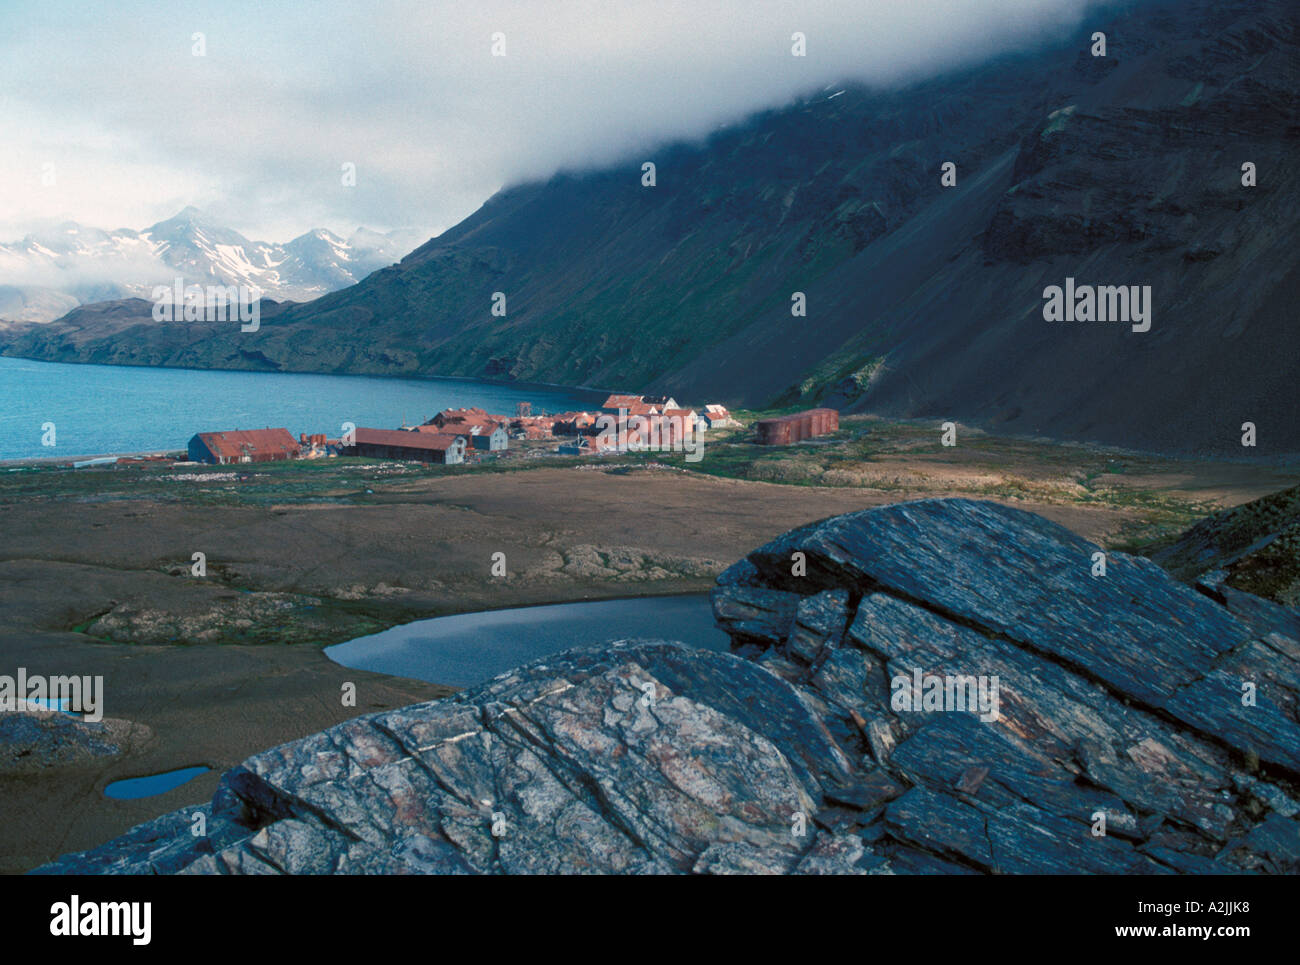 Antarctica, Sub-Antarctic Islands, South Georgia. View of research station - Stock Image